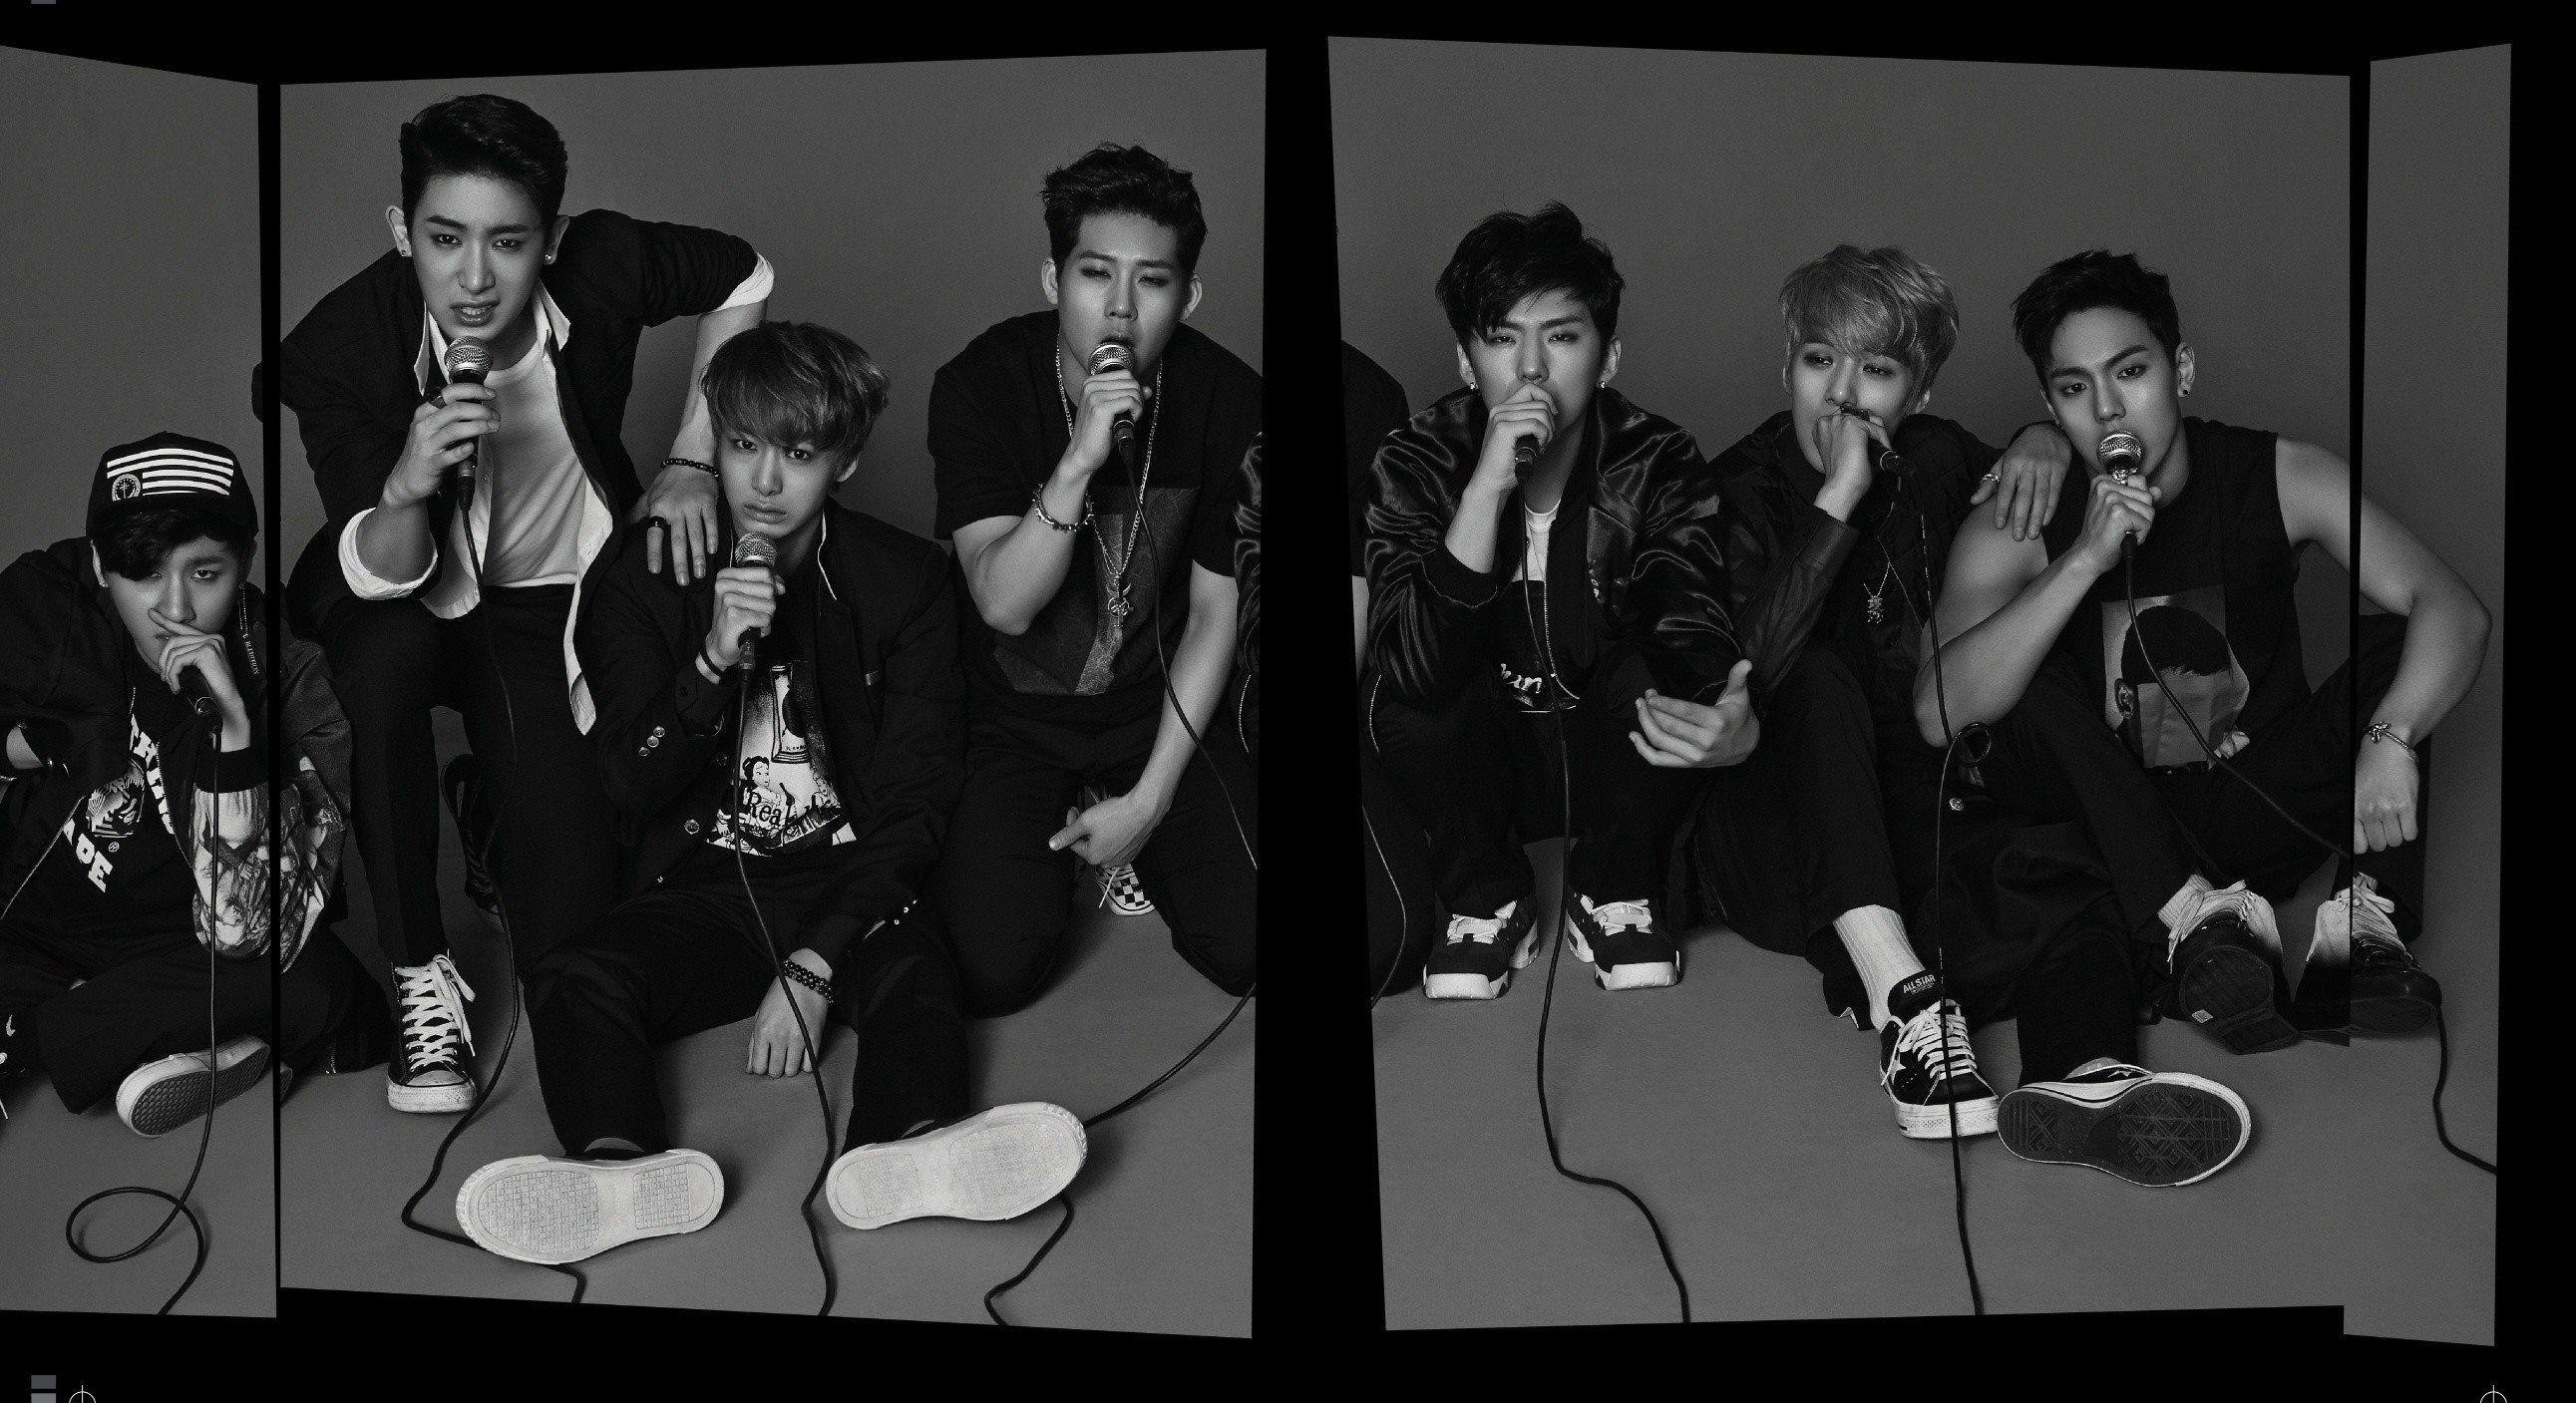 2583x1407 Monsta X wallpaper | 1920x1080 | 816851 | WallpaperUP